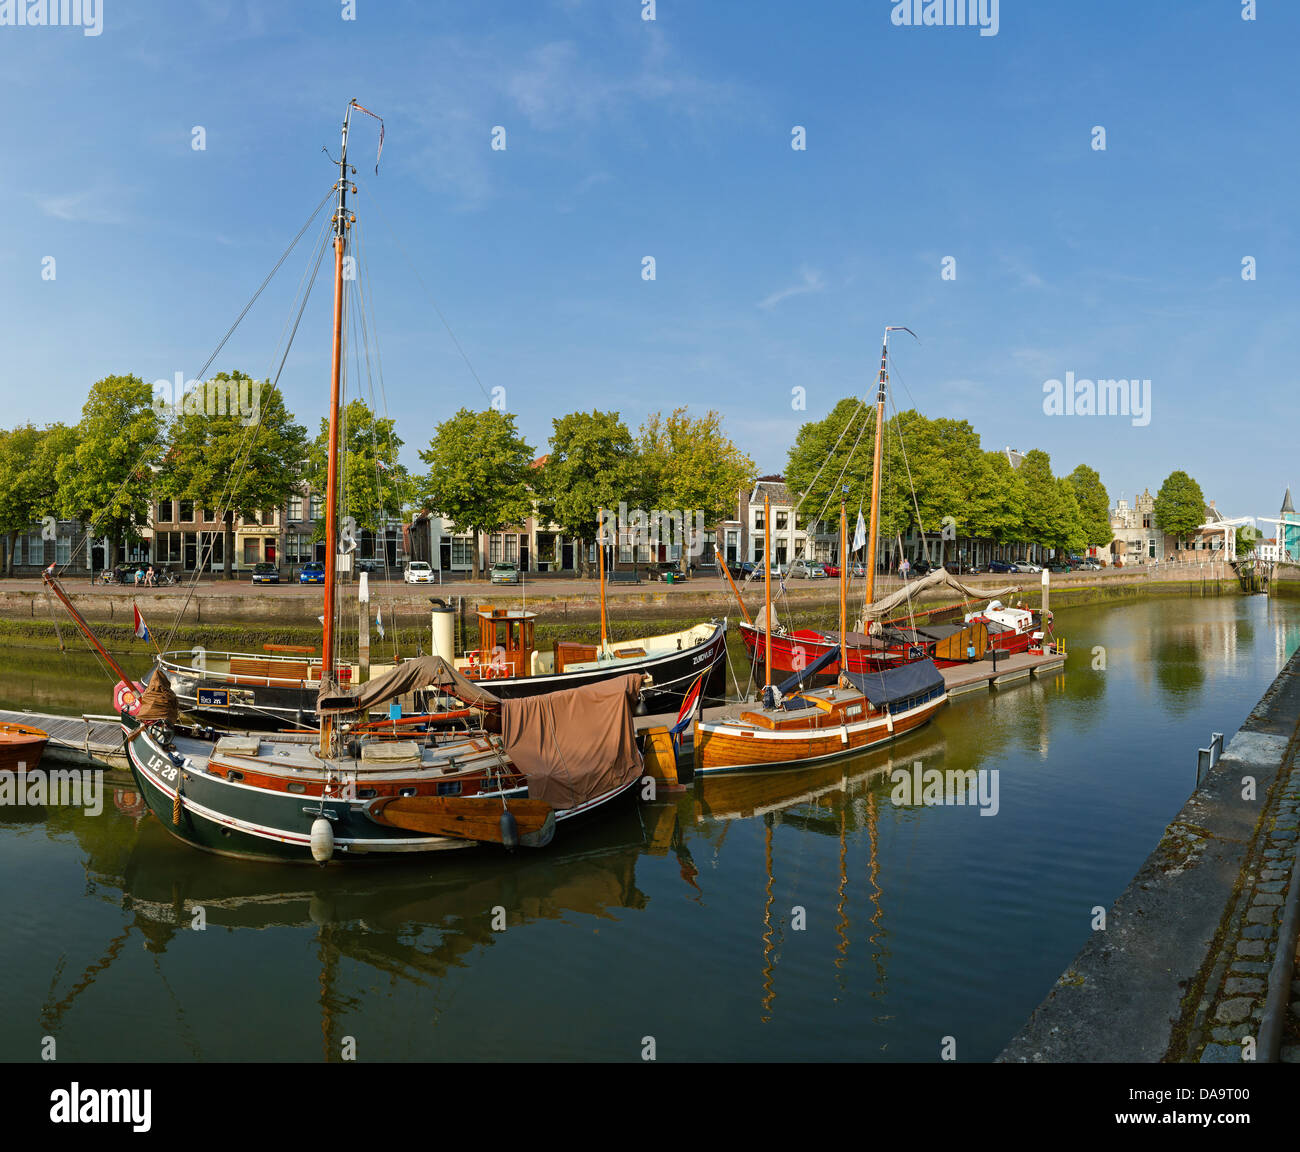 Netherlands, Holland, Europe, Zierikzee, Inland port, city, village, water, summer, ships, boat, harbour - Stock Image